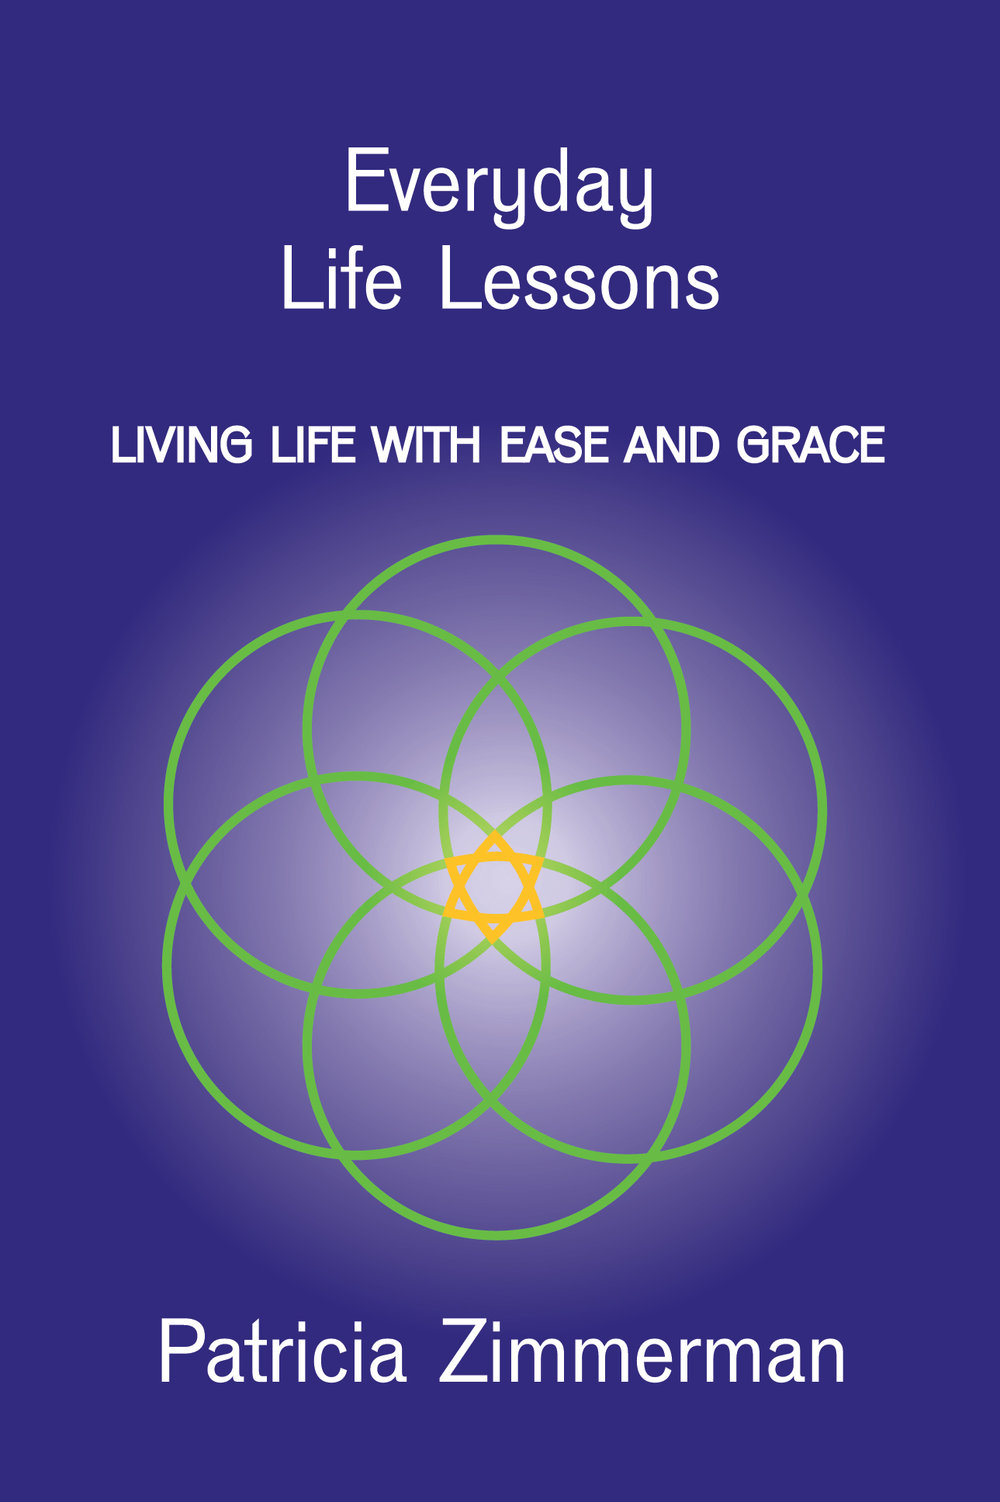 Everyday Life Lessons_book cover.jpg